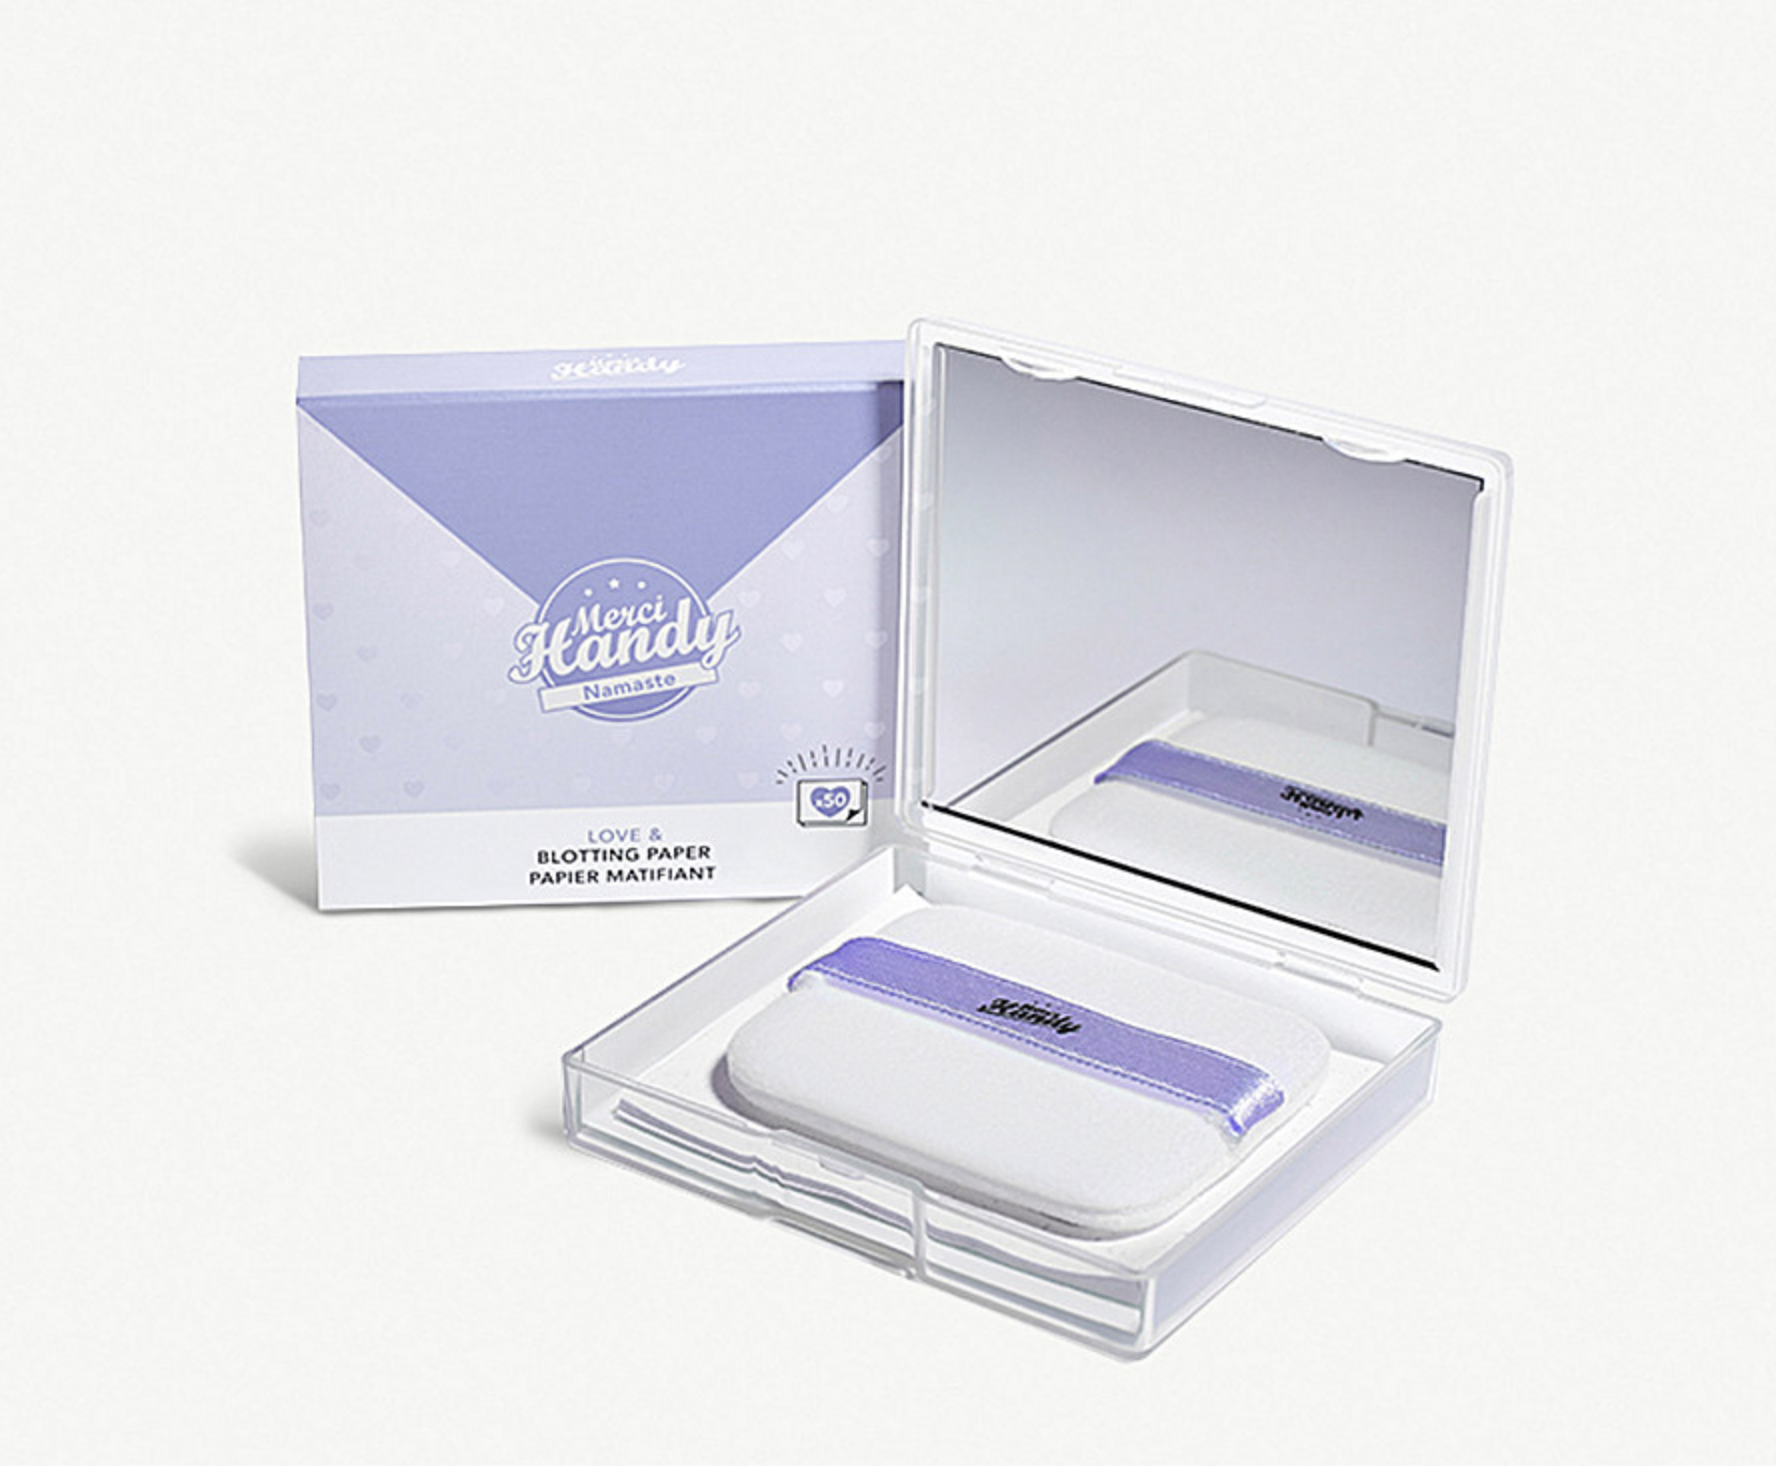 MERCI HANDY -Namaste Blotting Papers -£6.00 - A godsend for those who tend to get a little shiny throughout the day, the Namaste Blotting Papers absorb any unsightly oil to leave your complexion feeling matte and fresh. With the natural Manila hemp scent is a serious bonus, right?